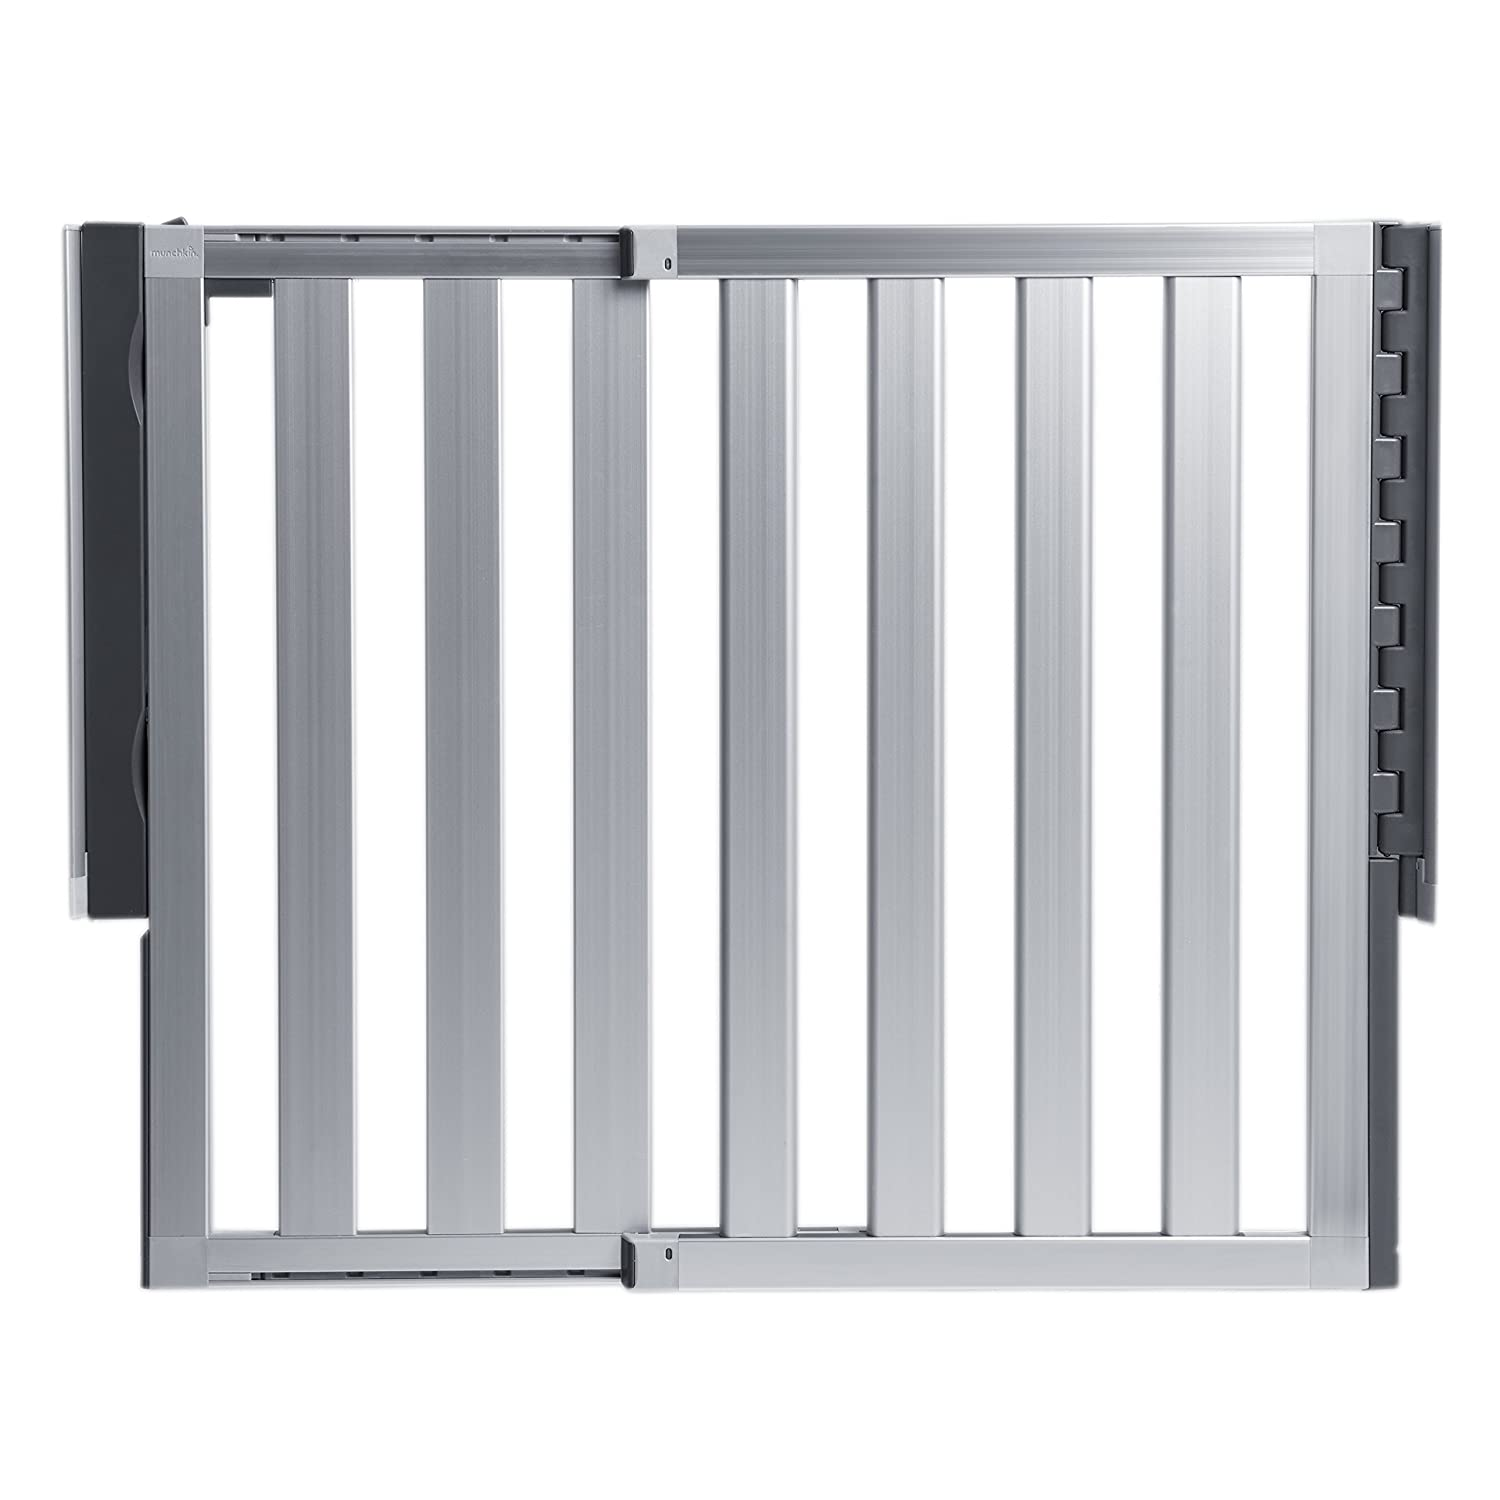 8. Munchkin Loft Aluminum Hardware Mount: Best Baby Gate for Stairs, Hallways, and Doors